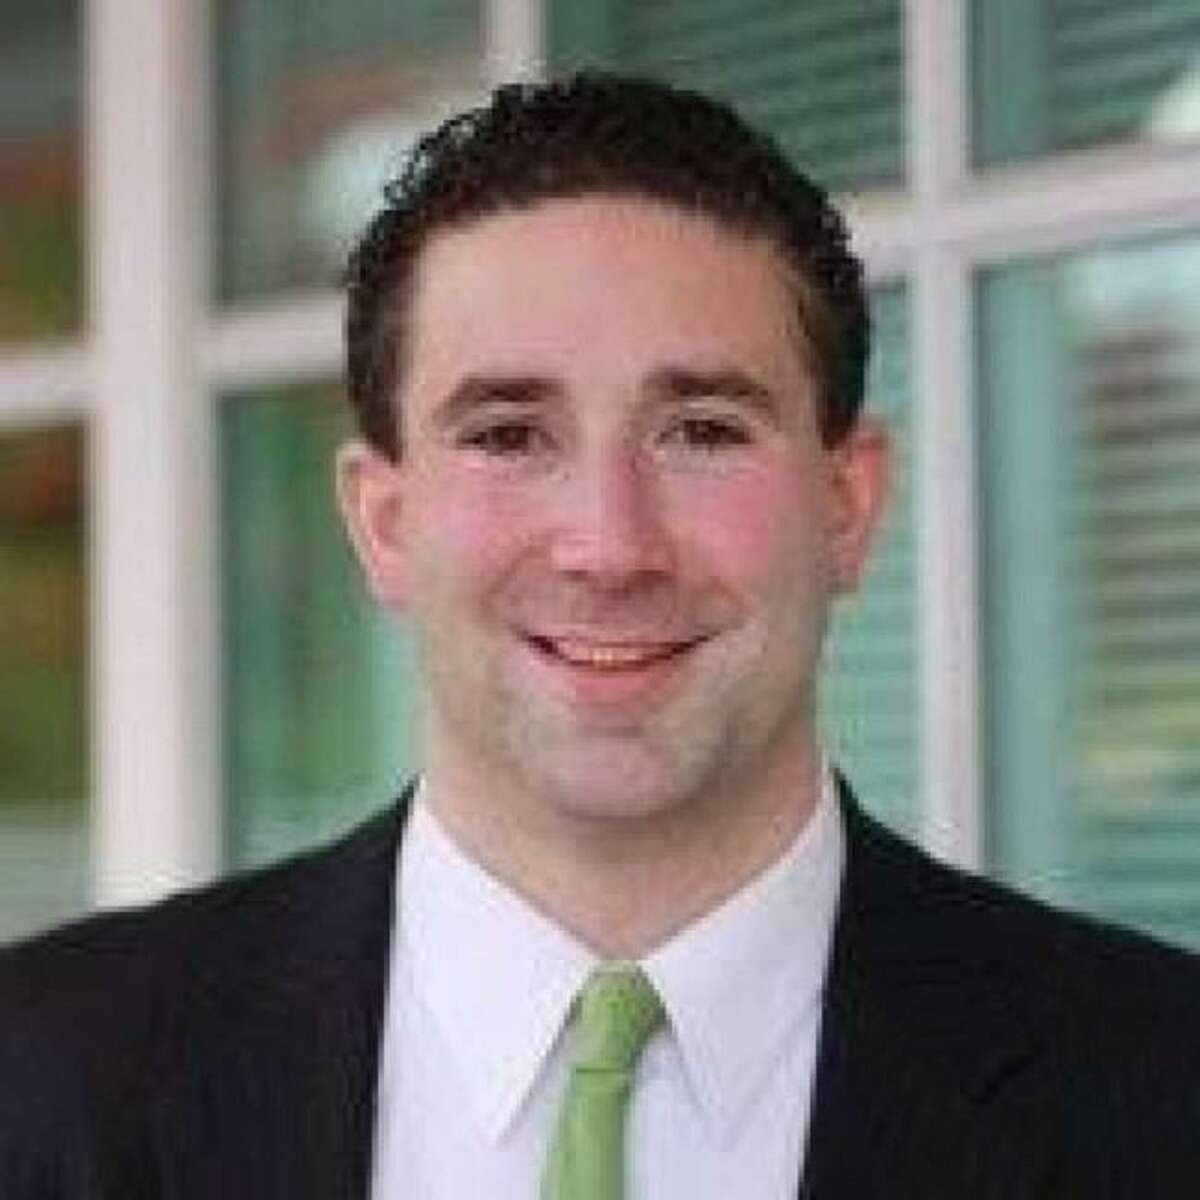 Jeremy F. Hayden, Monroe Town Attorney, who died Oct. 29, 2019 at age 41